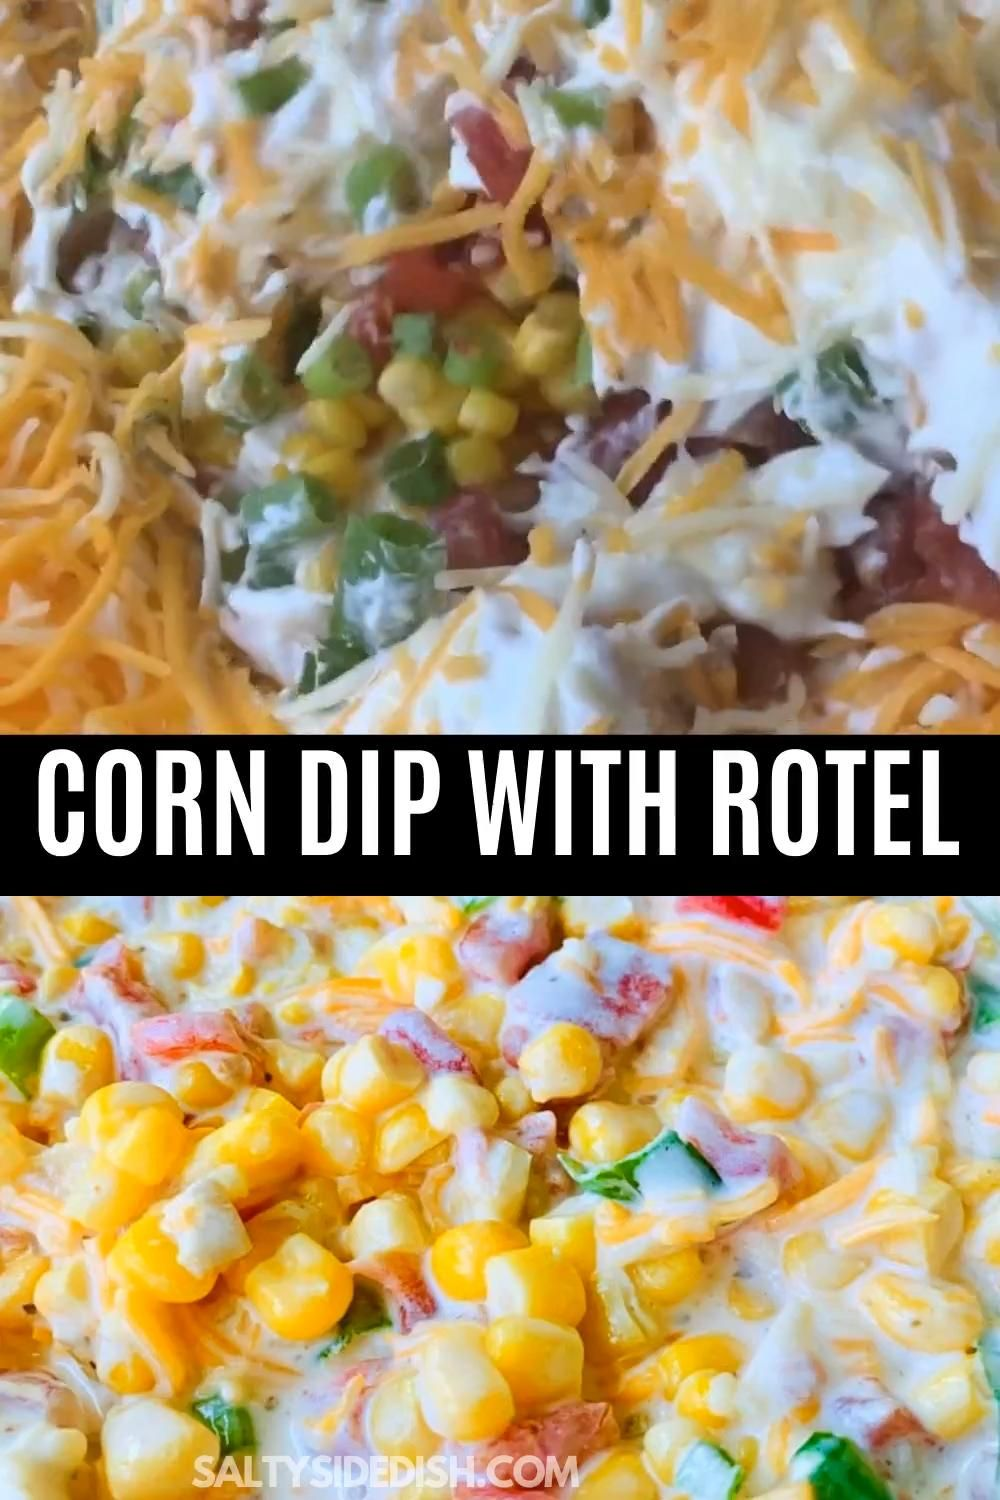 Fiesta Corn dip with Rotel and sour cream, is a delicious large party dip where you and your party guests will enjoy bite after heart bite of creamy and cheesy corn dip. Prepped in 5 minutes, there isn't an easier dip recipe out there. This cold party dip is also incredibly easy to spice up if you prefer a hotter dip or cool down for the kids.